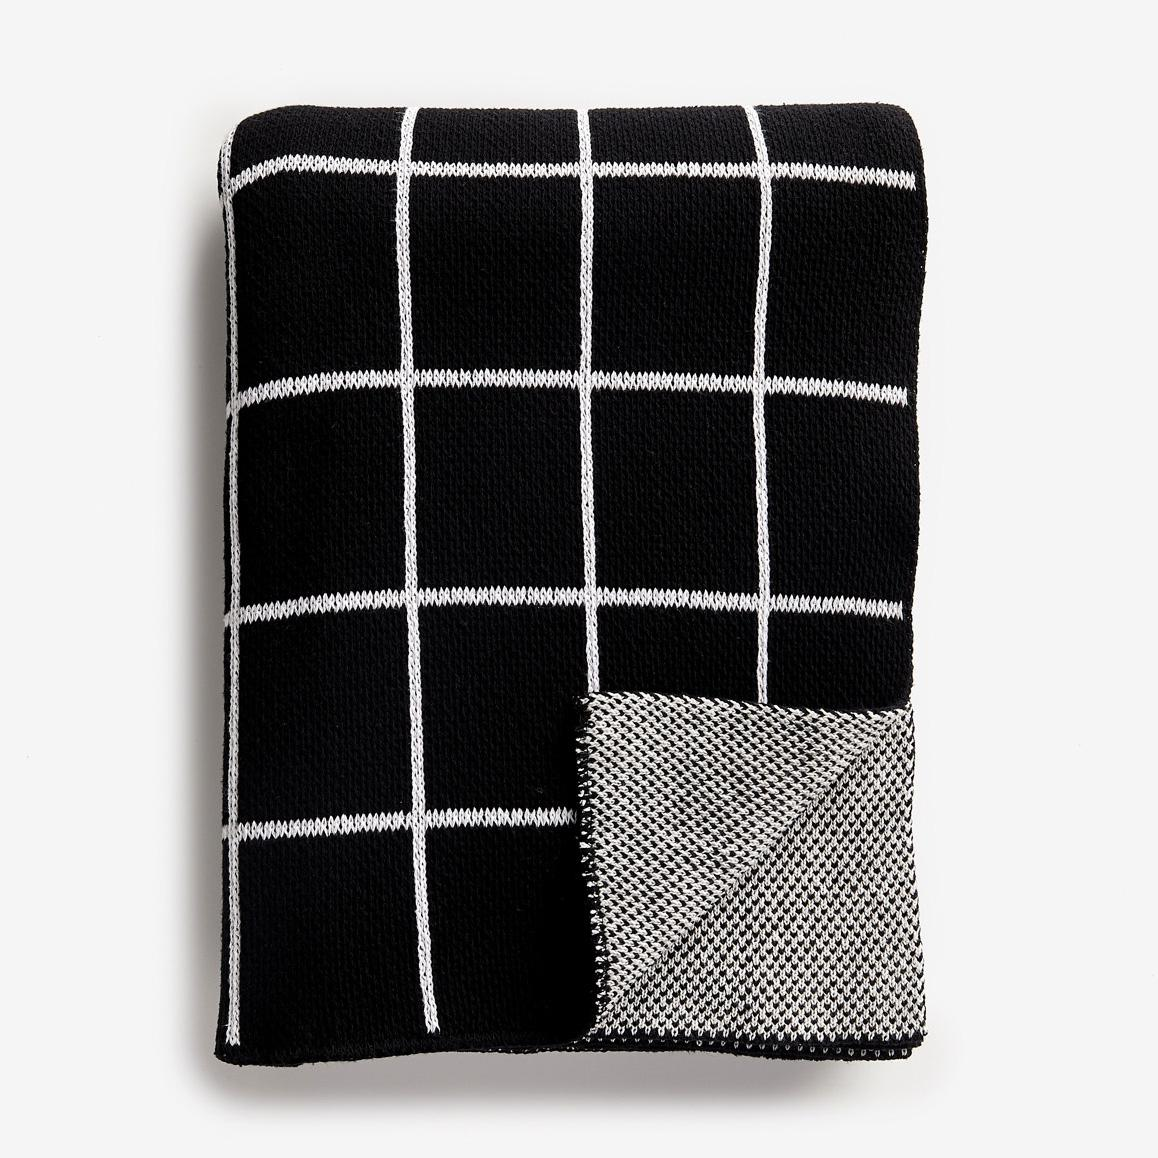 Grid Black Knit Throw Blanket